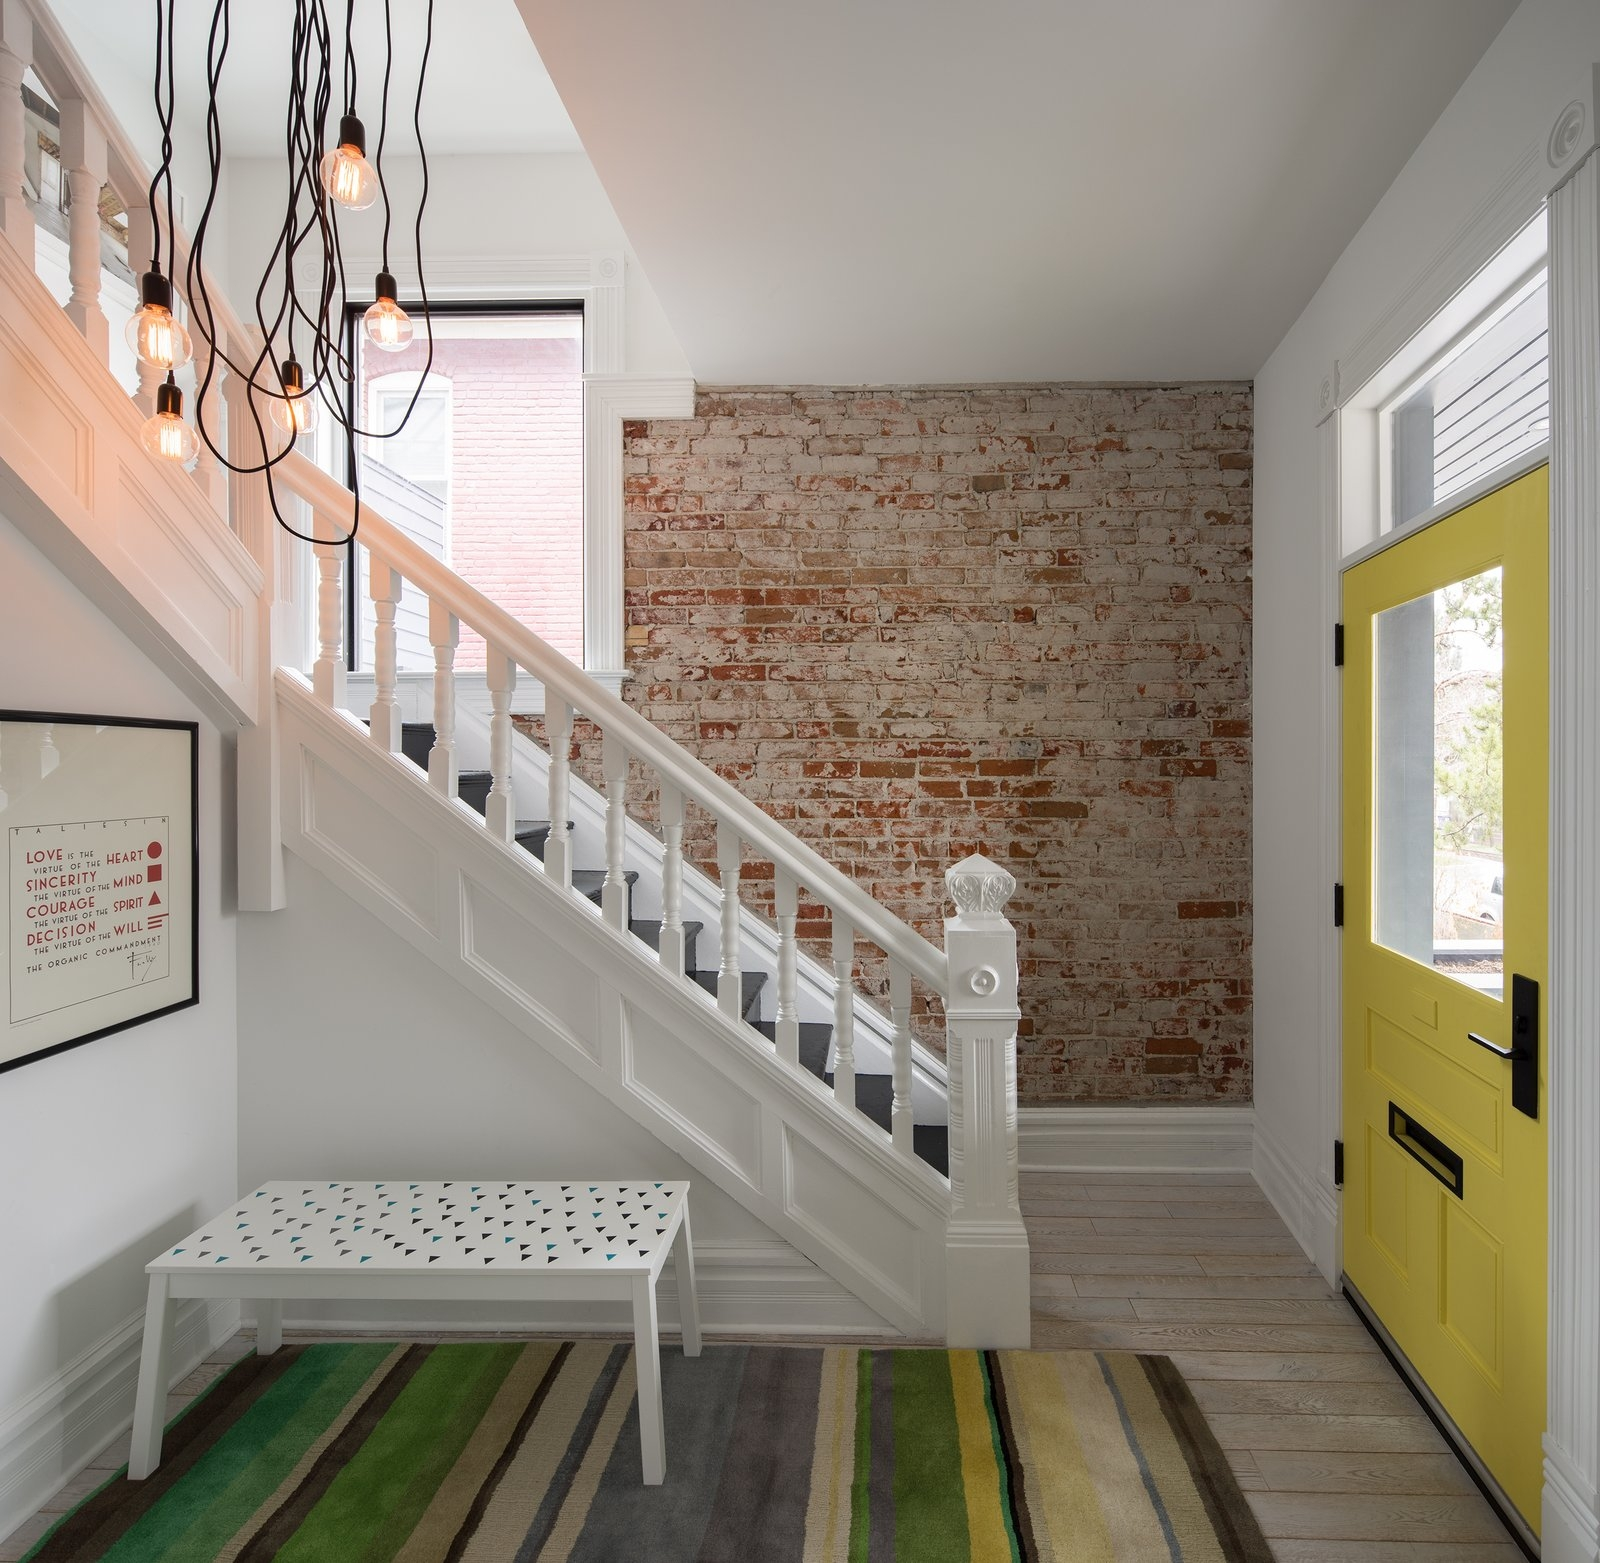 Photo 1 Of 14 In Thole Residence By Design Platform Dwell | Staircase Exterior Wall Design | Commercial | Entrance Ceiling | Interior | Modern | Boundary Wall